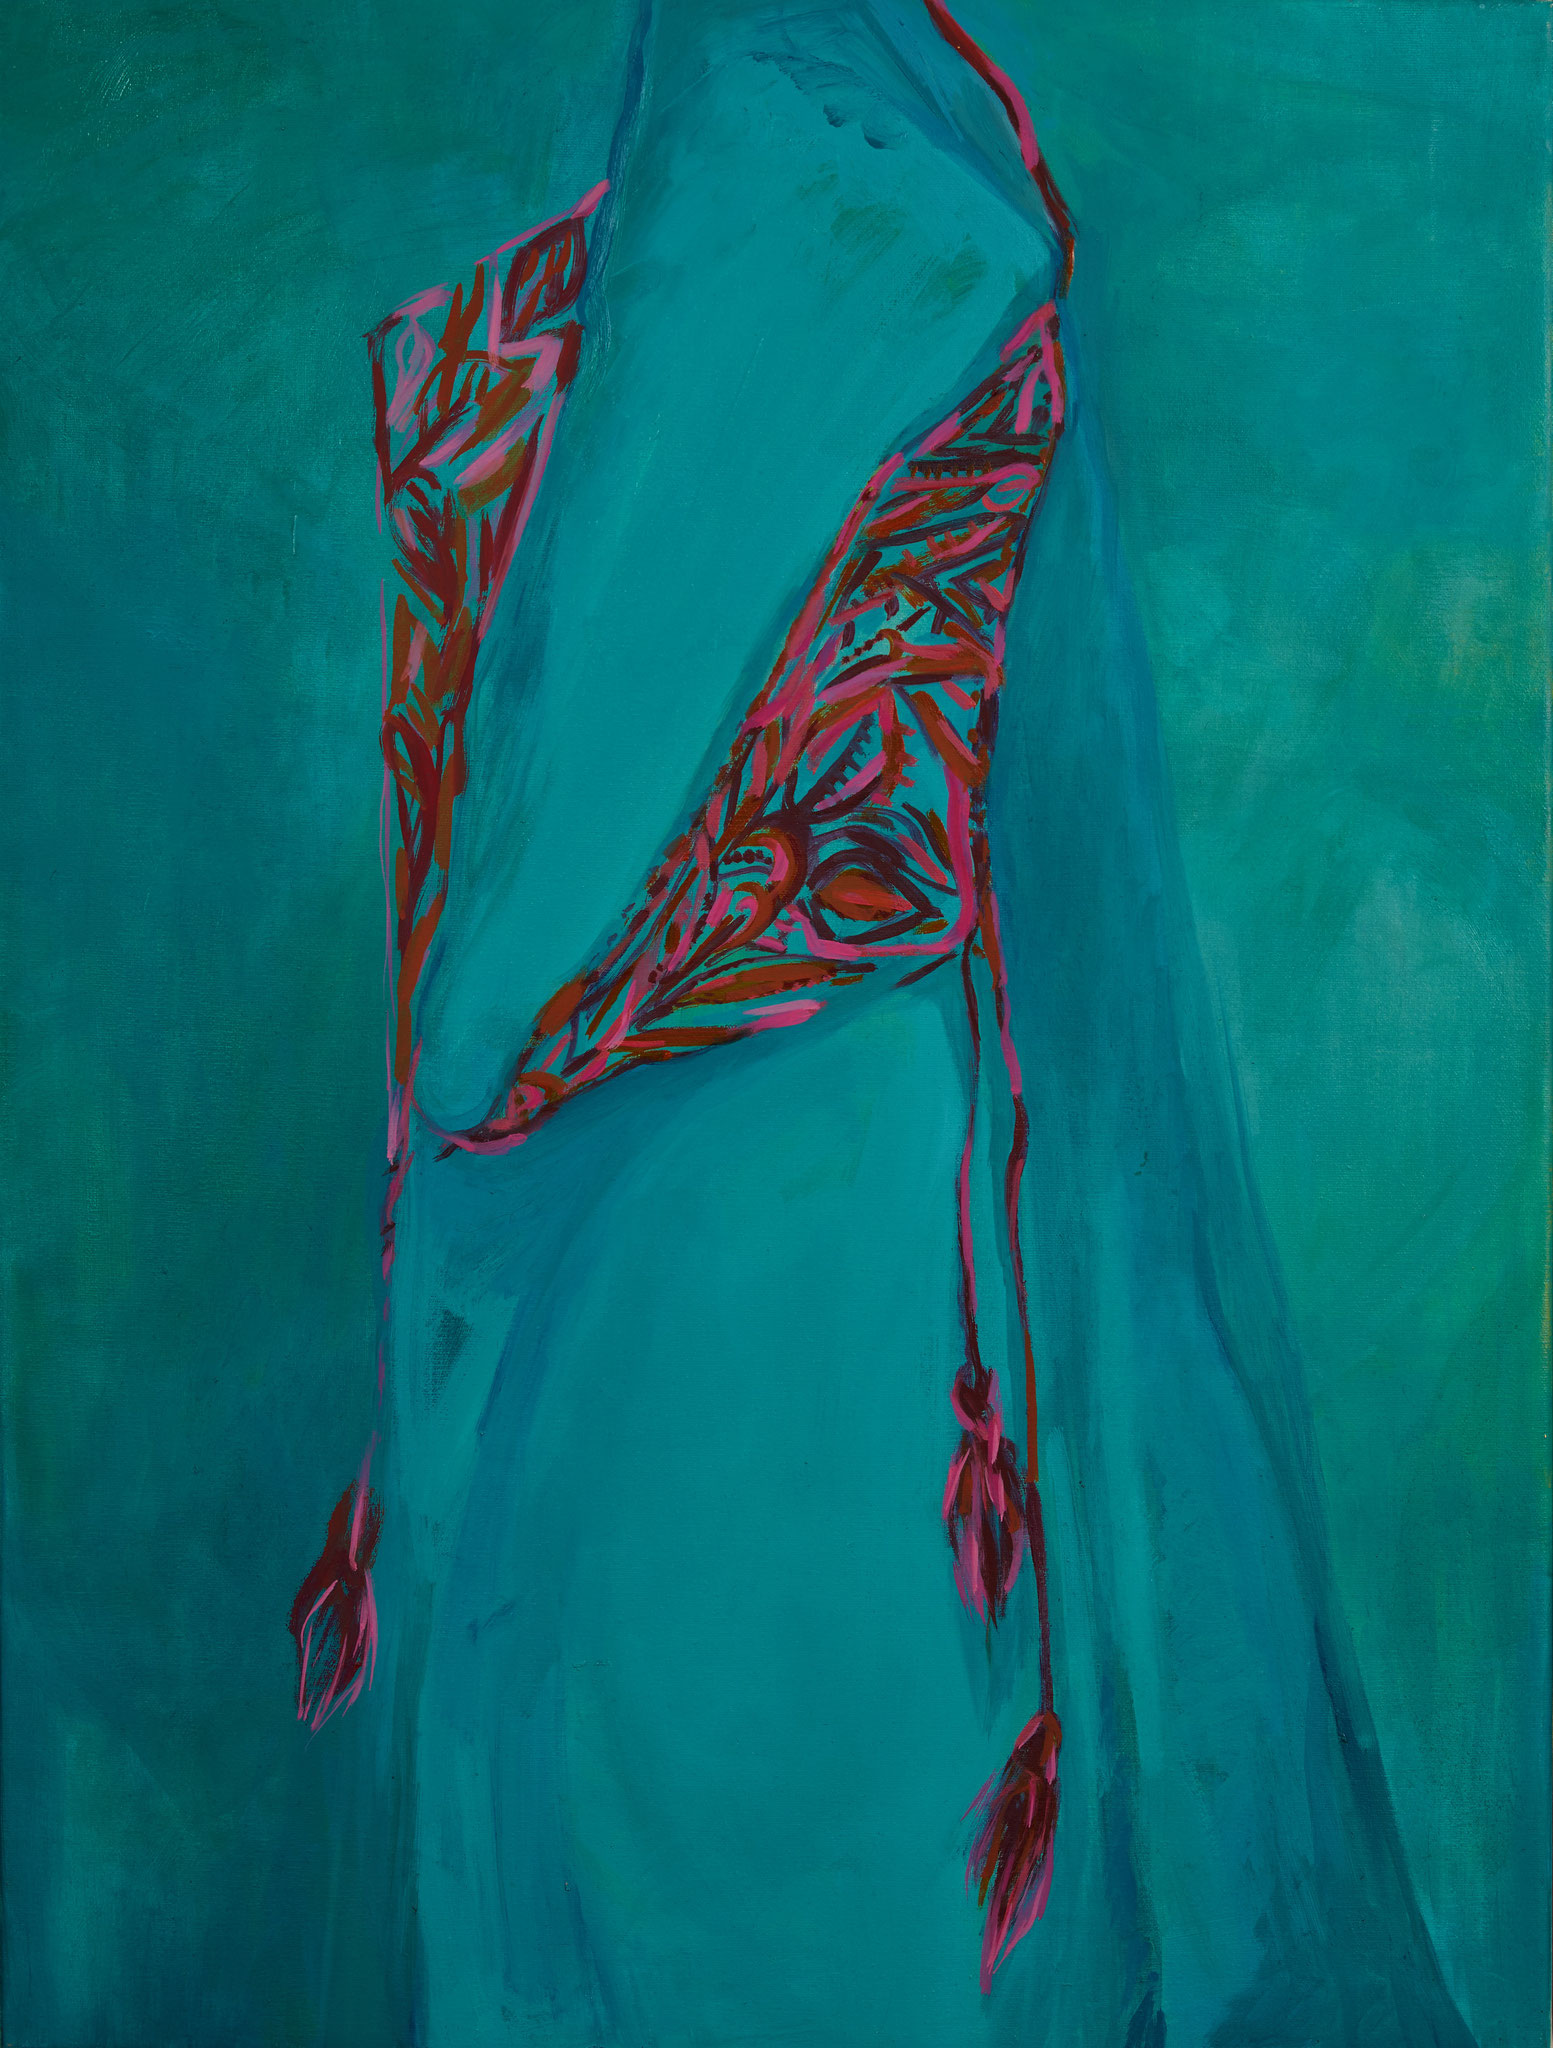 My Romanian Blouse, Oil on canvas, 2015, 23.6 x 31.4 in.